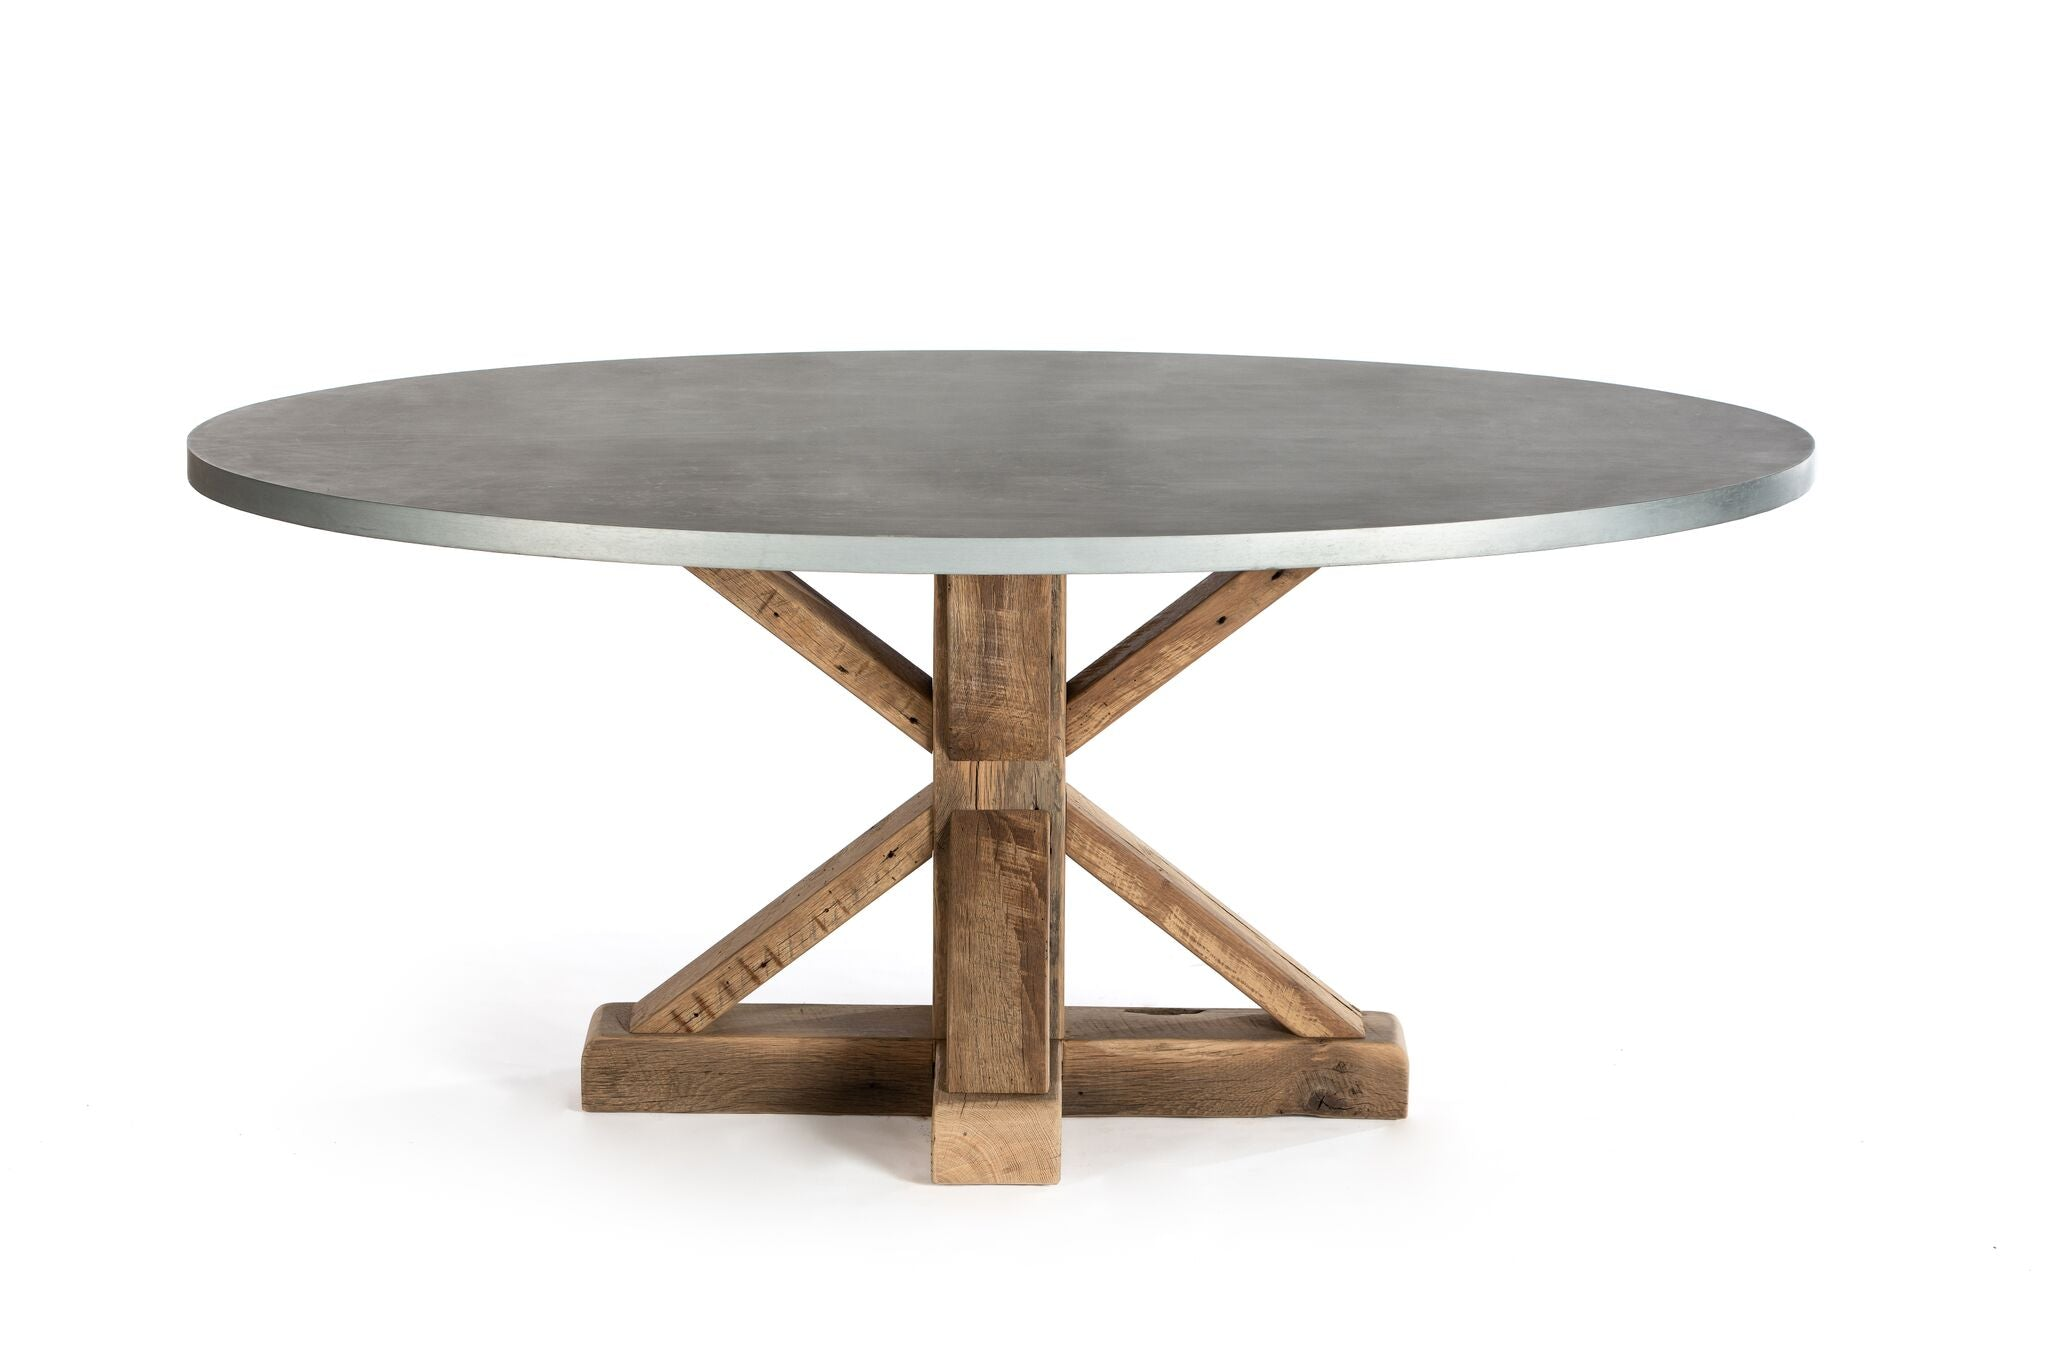 "Zinc Oval Tables | Pedestal French Trestle | CLASSIC | Americana on Reclaimed Oak | CUSTOM SIZE 60""L 39""W 30""H 